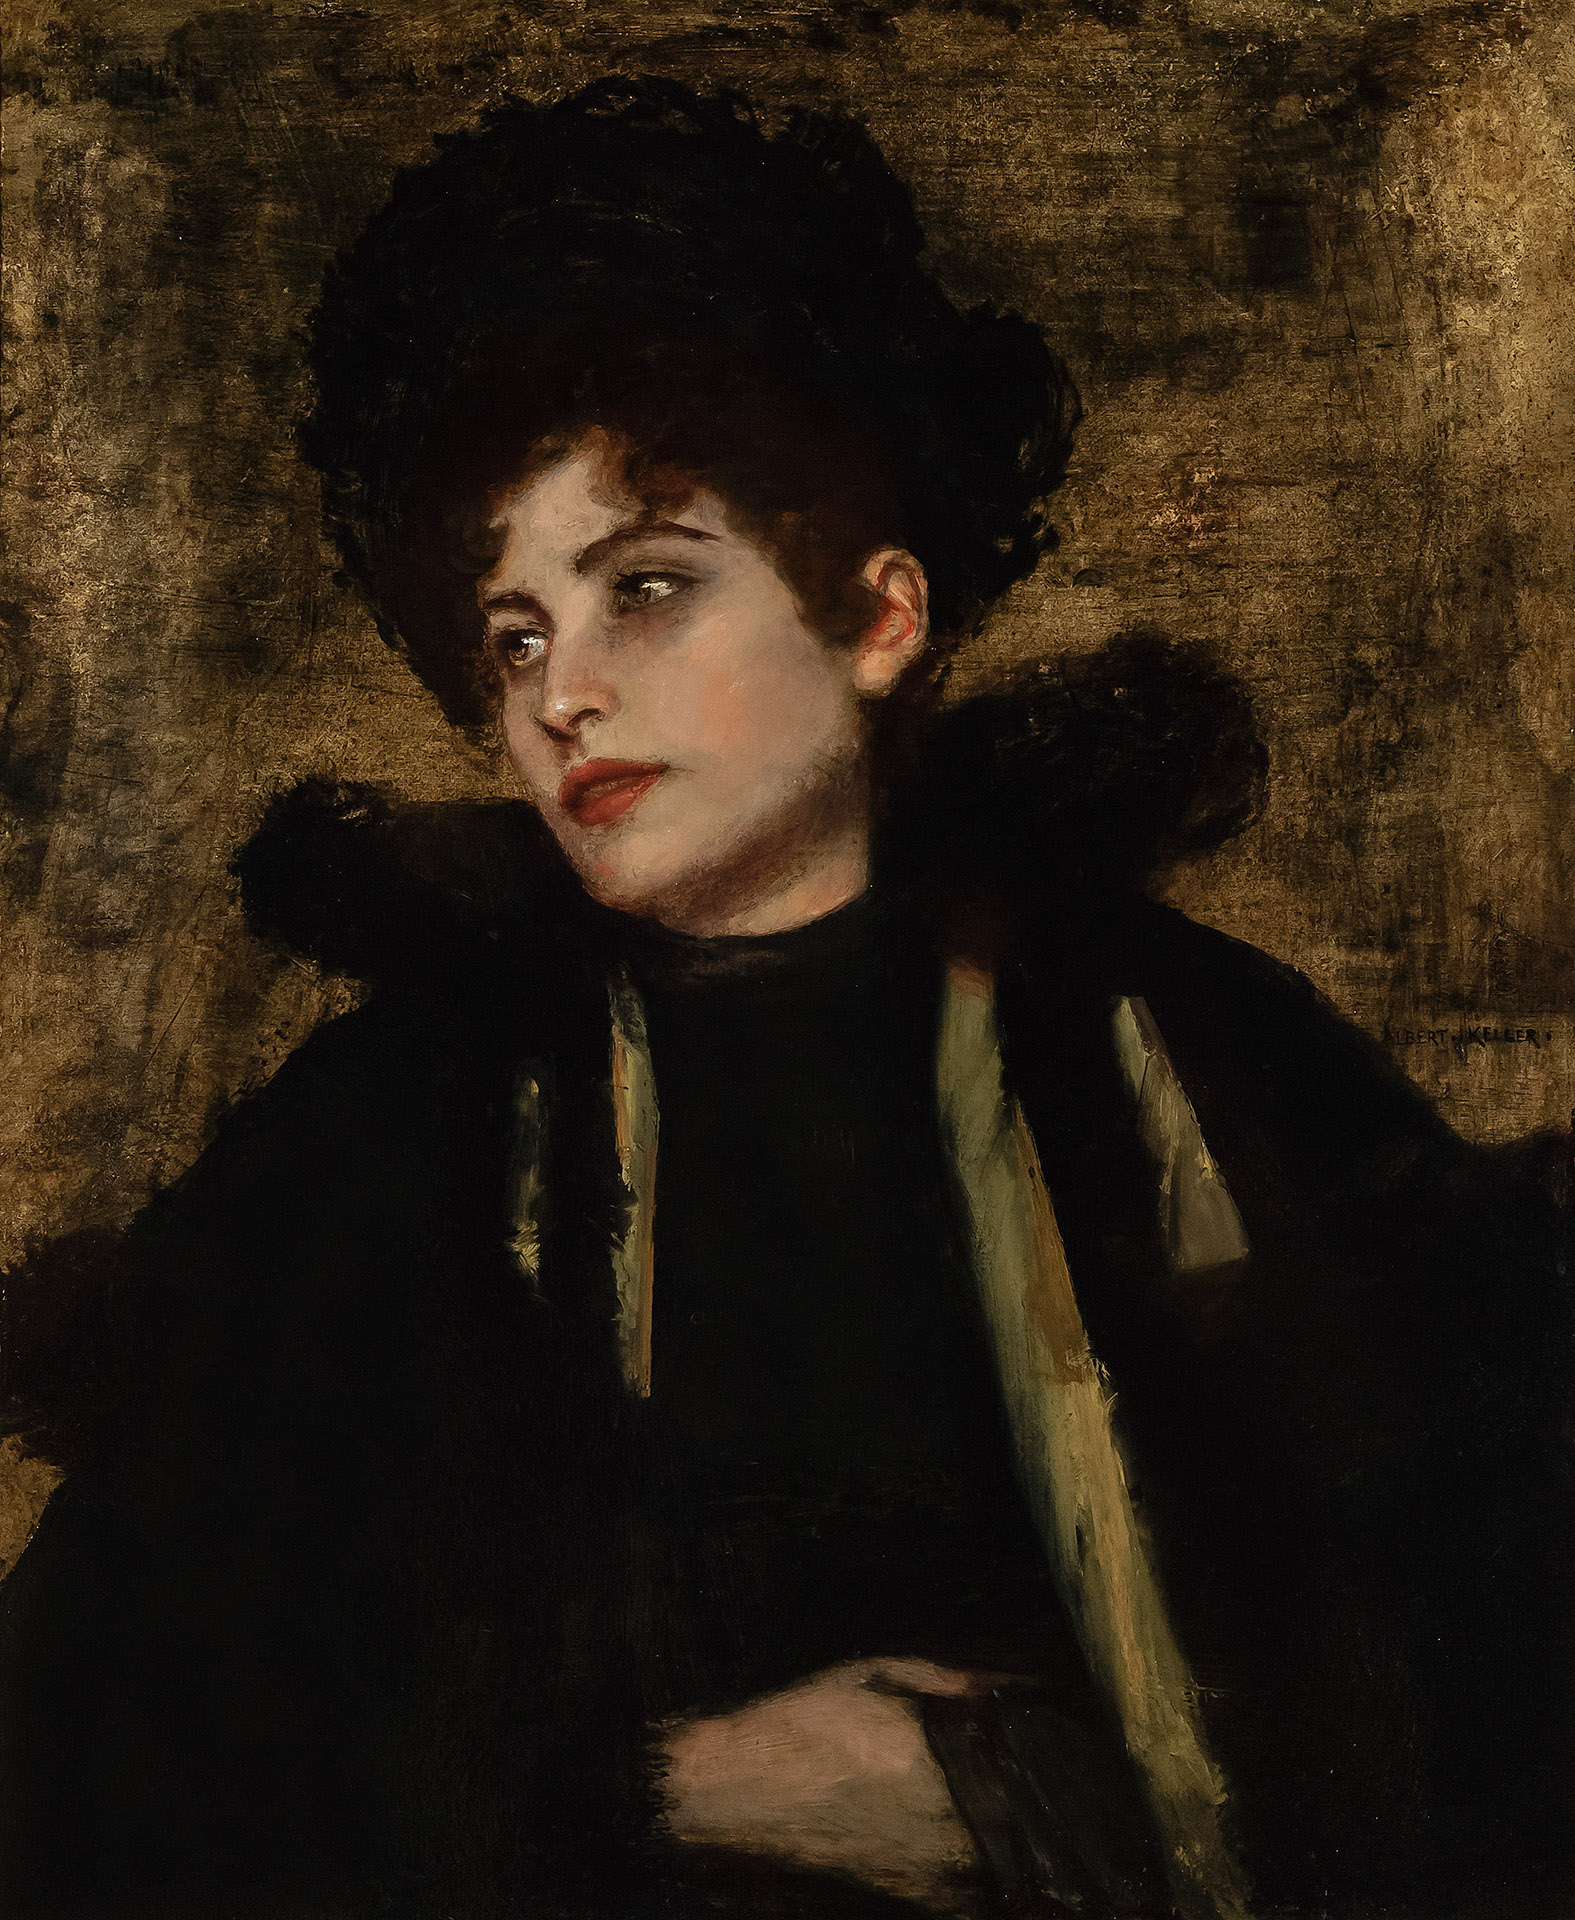 Portrait of Lily disgeistes